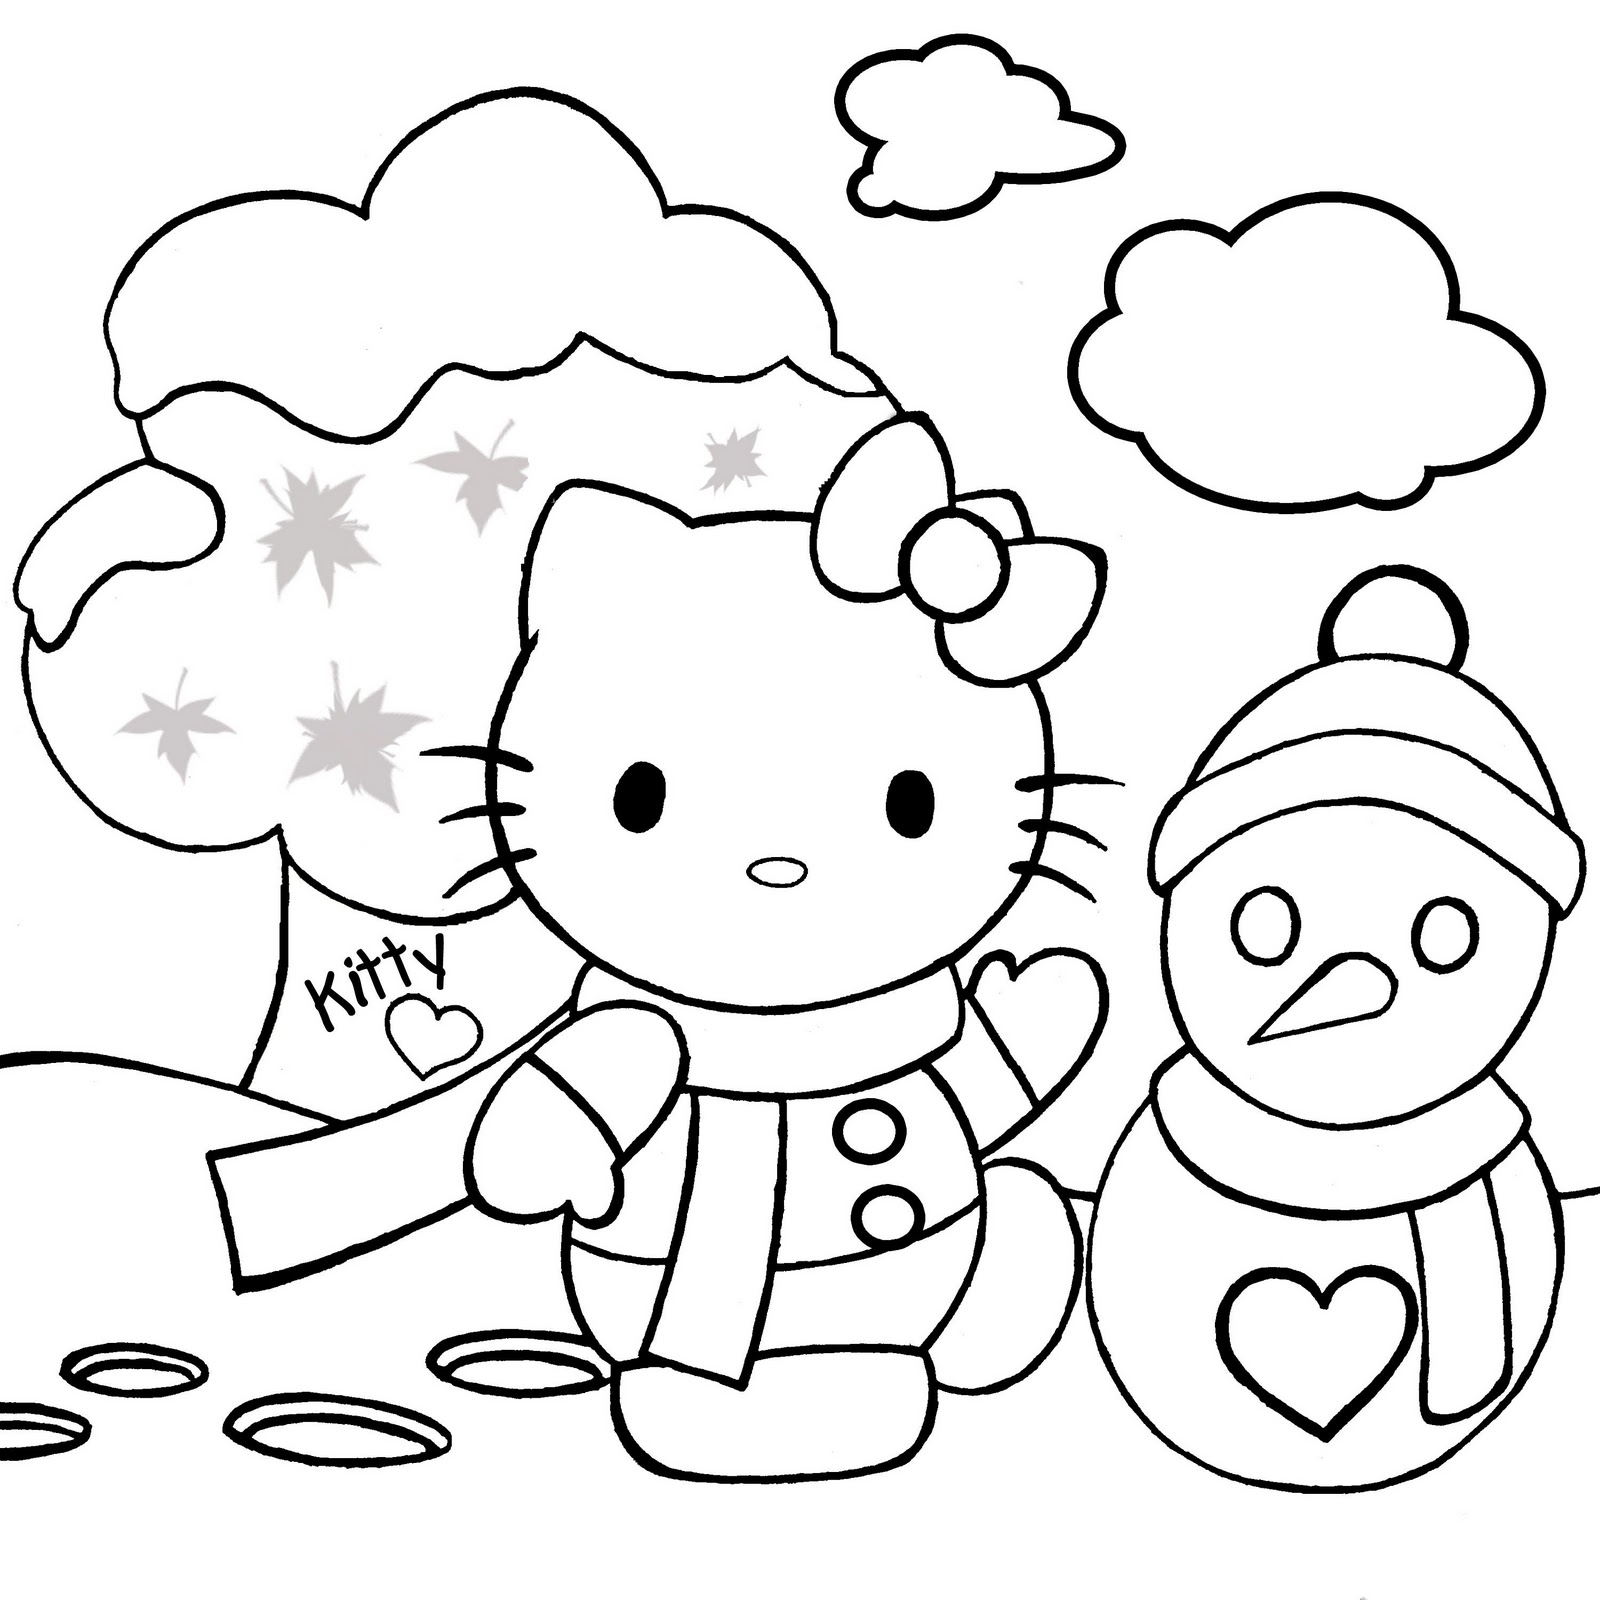 hello kitty coloring pages free hello kitty coloring pages free coloring hello pages kitty free